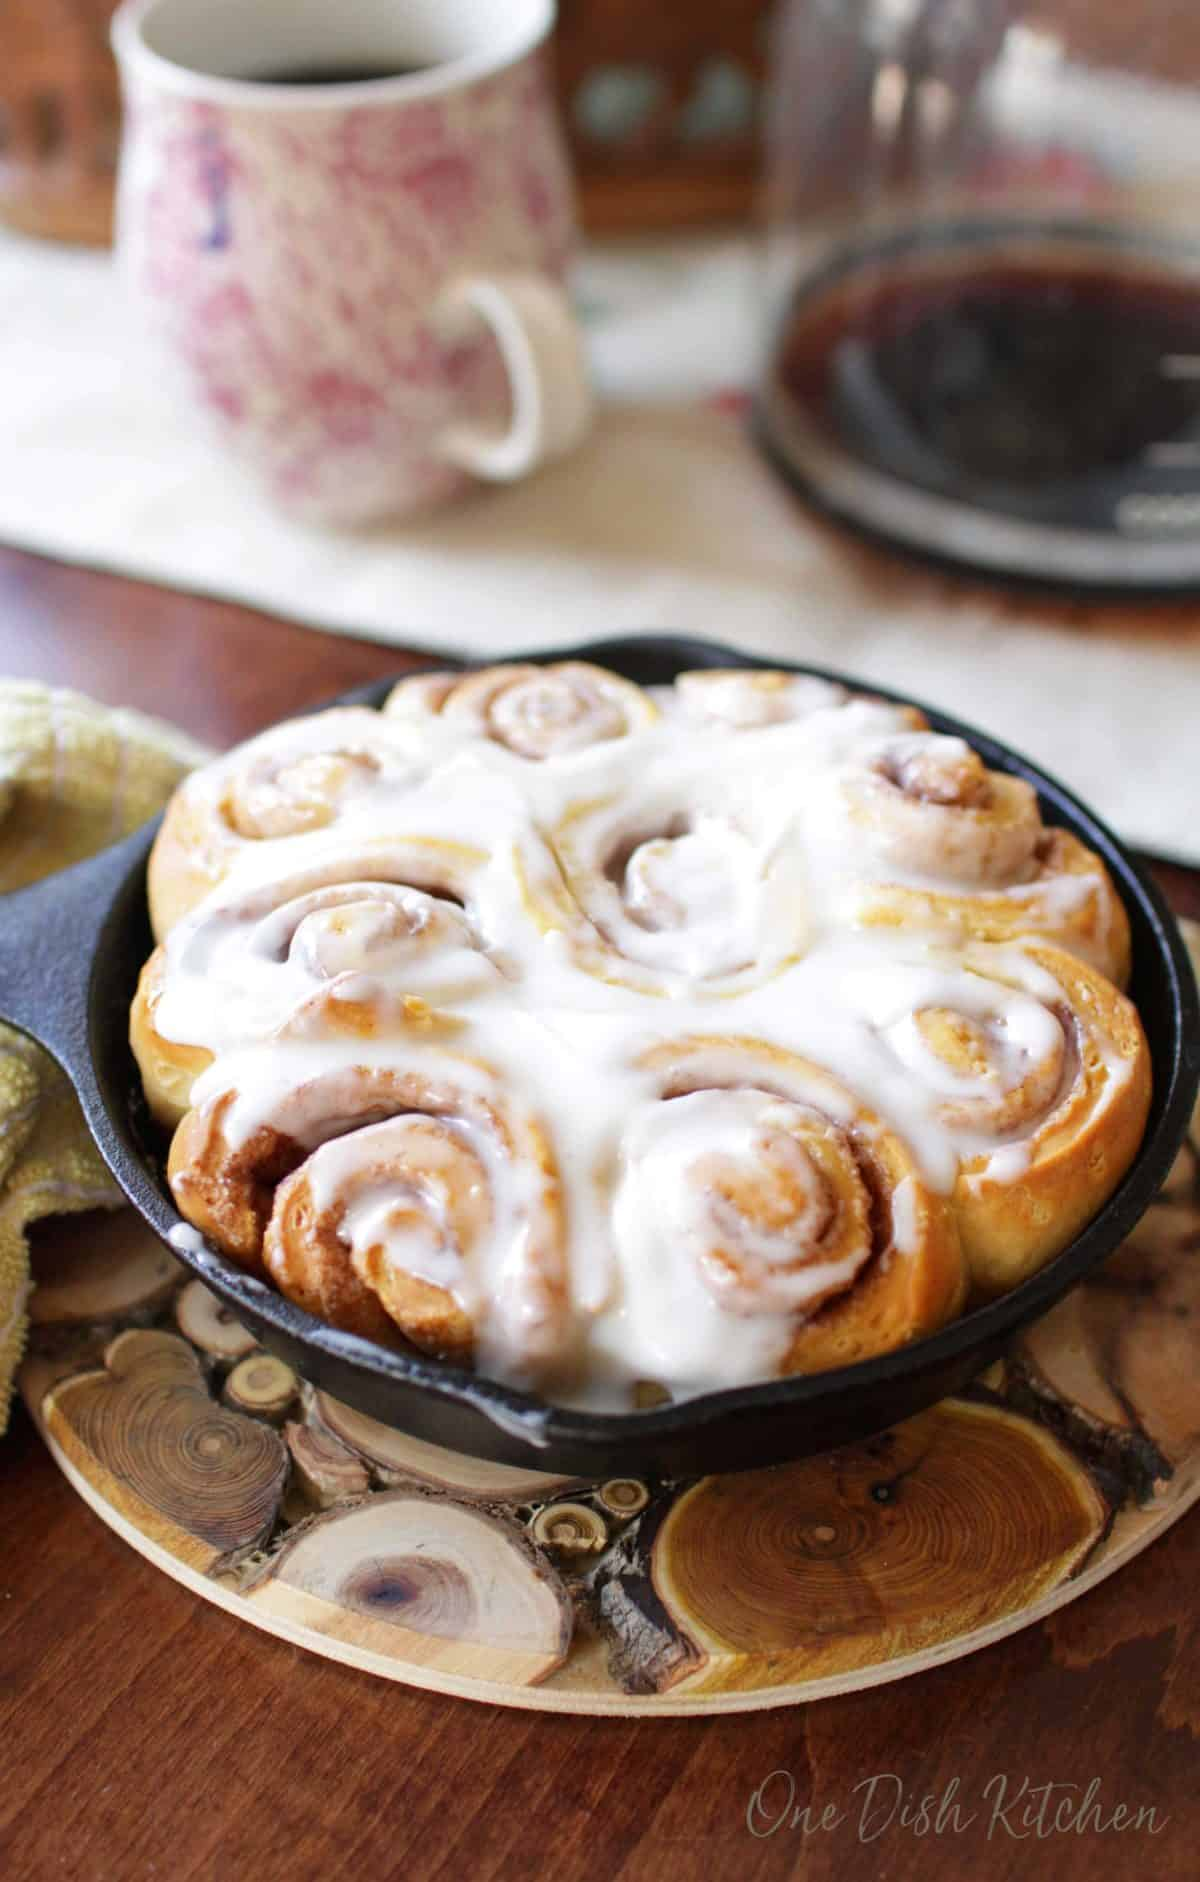 A small skillet of homemade cinnamon rolls topped with frosting on a wooden trivet